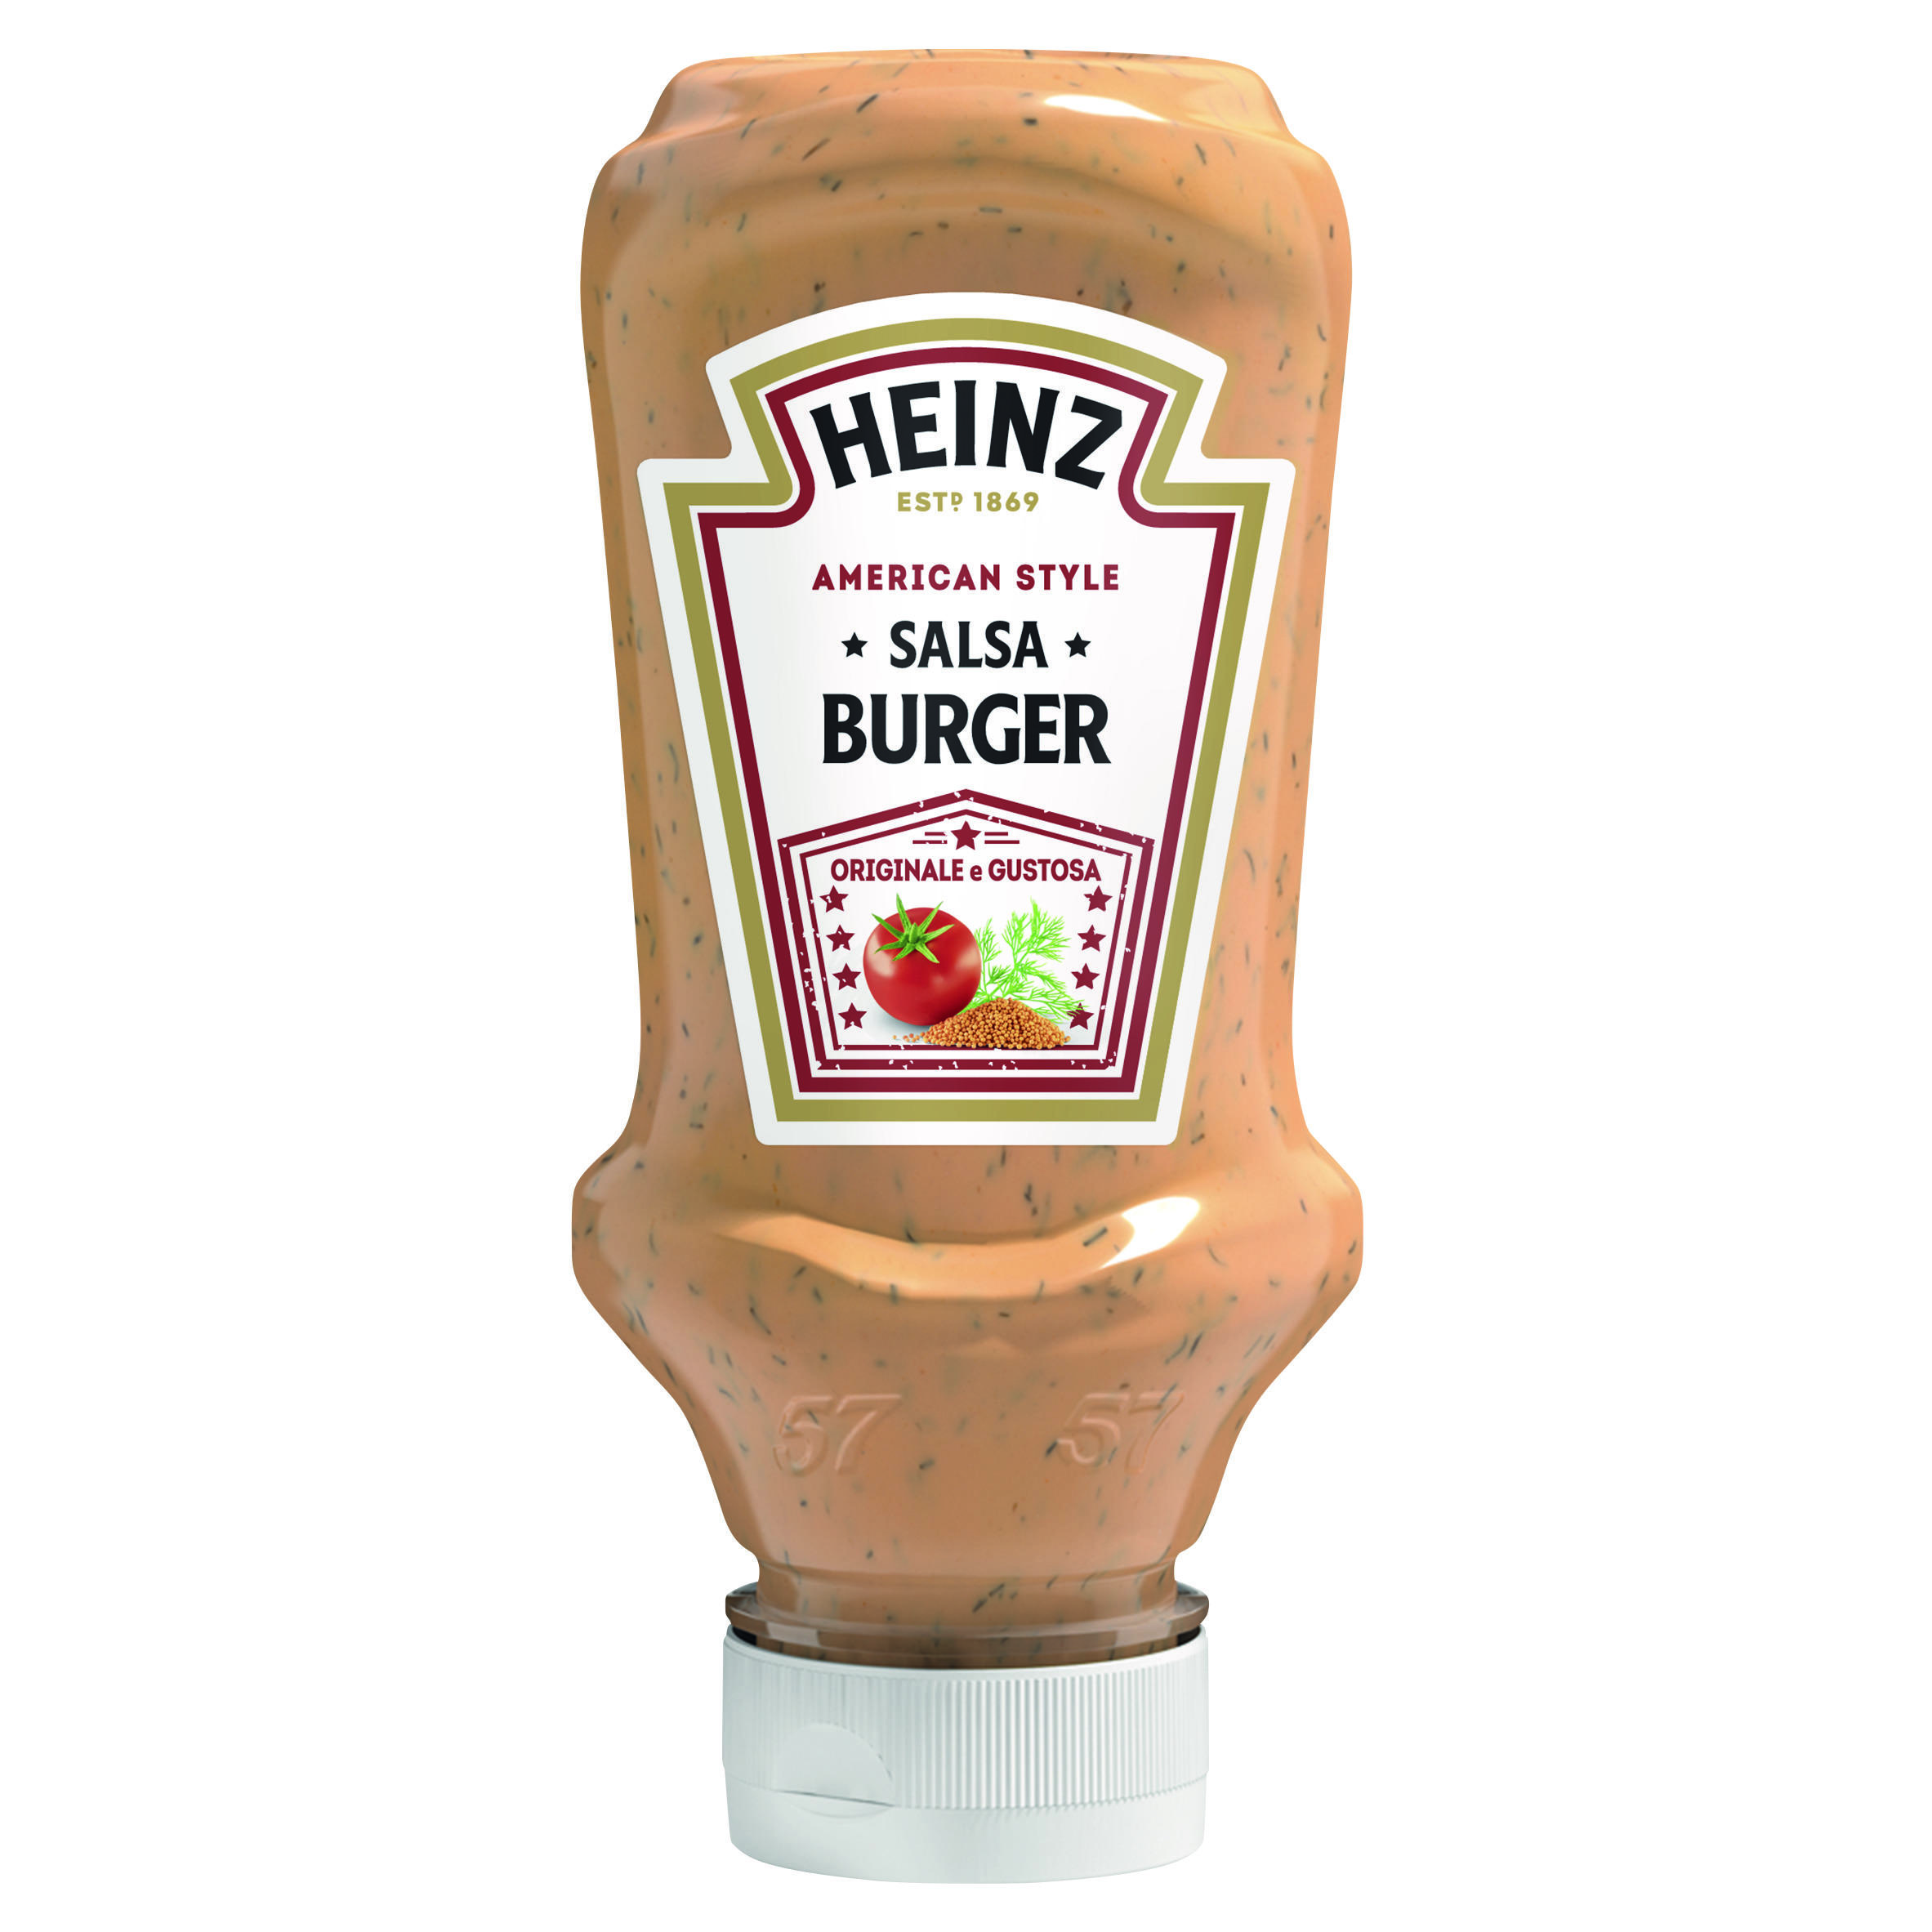 Heinz Salsa Burger 230g Top Down image